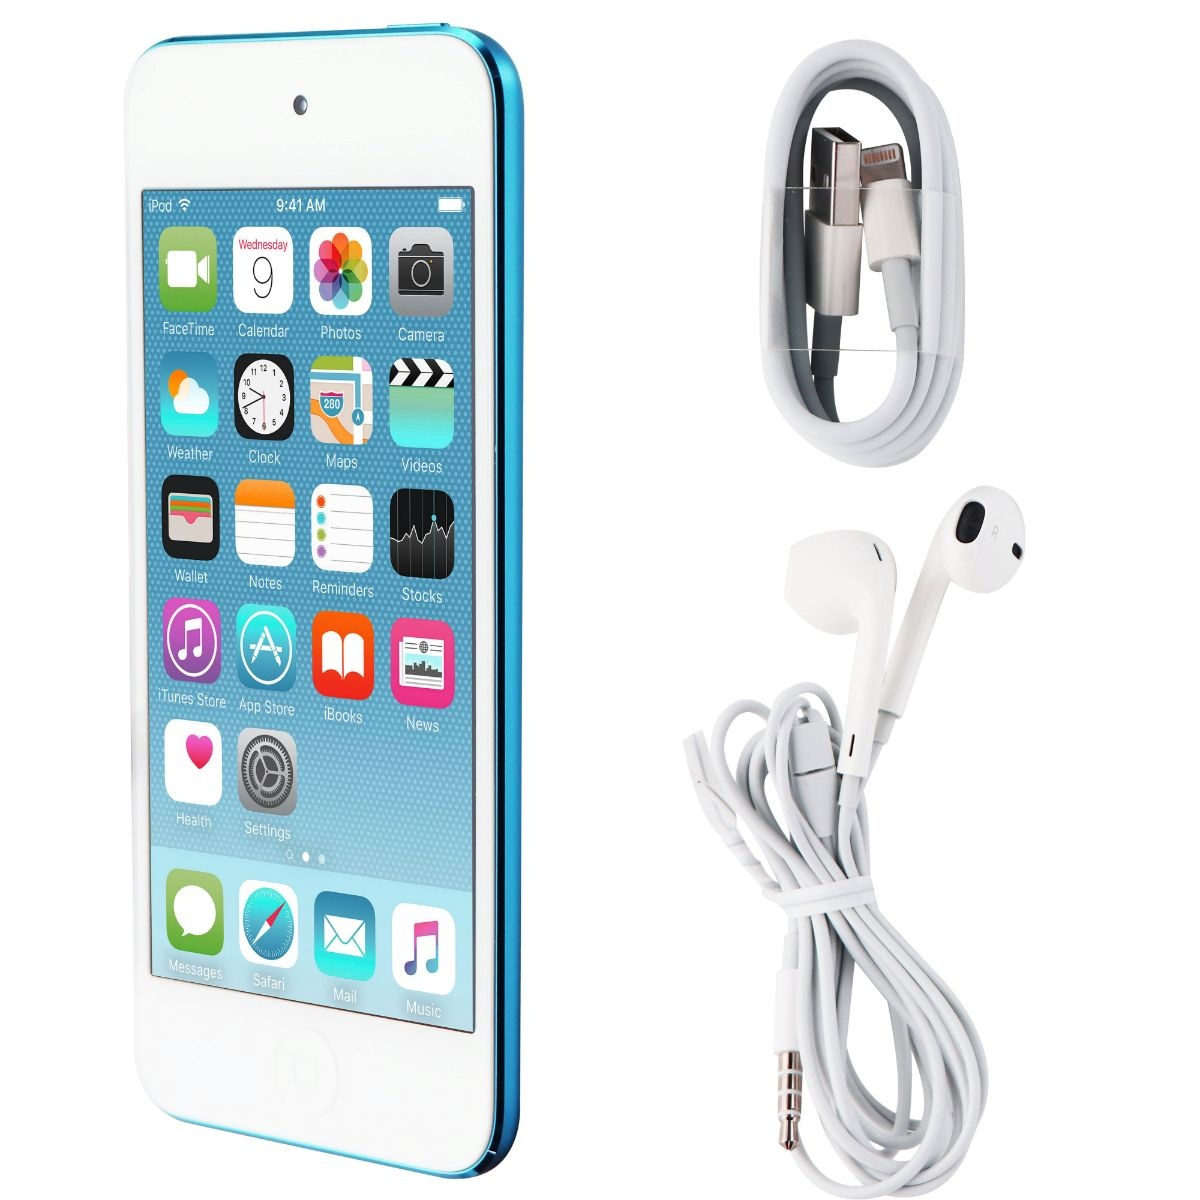 Apple iPod Touch 5th Generation (A1421) - 16GB/Blue (MGG32LL/A)